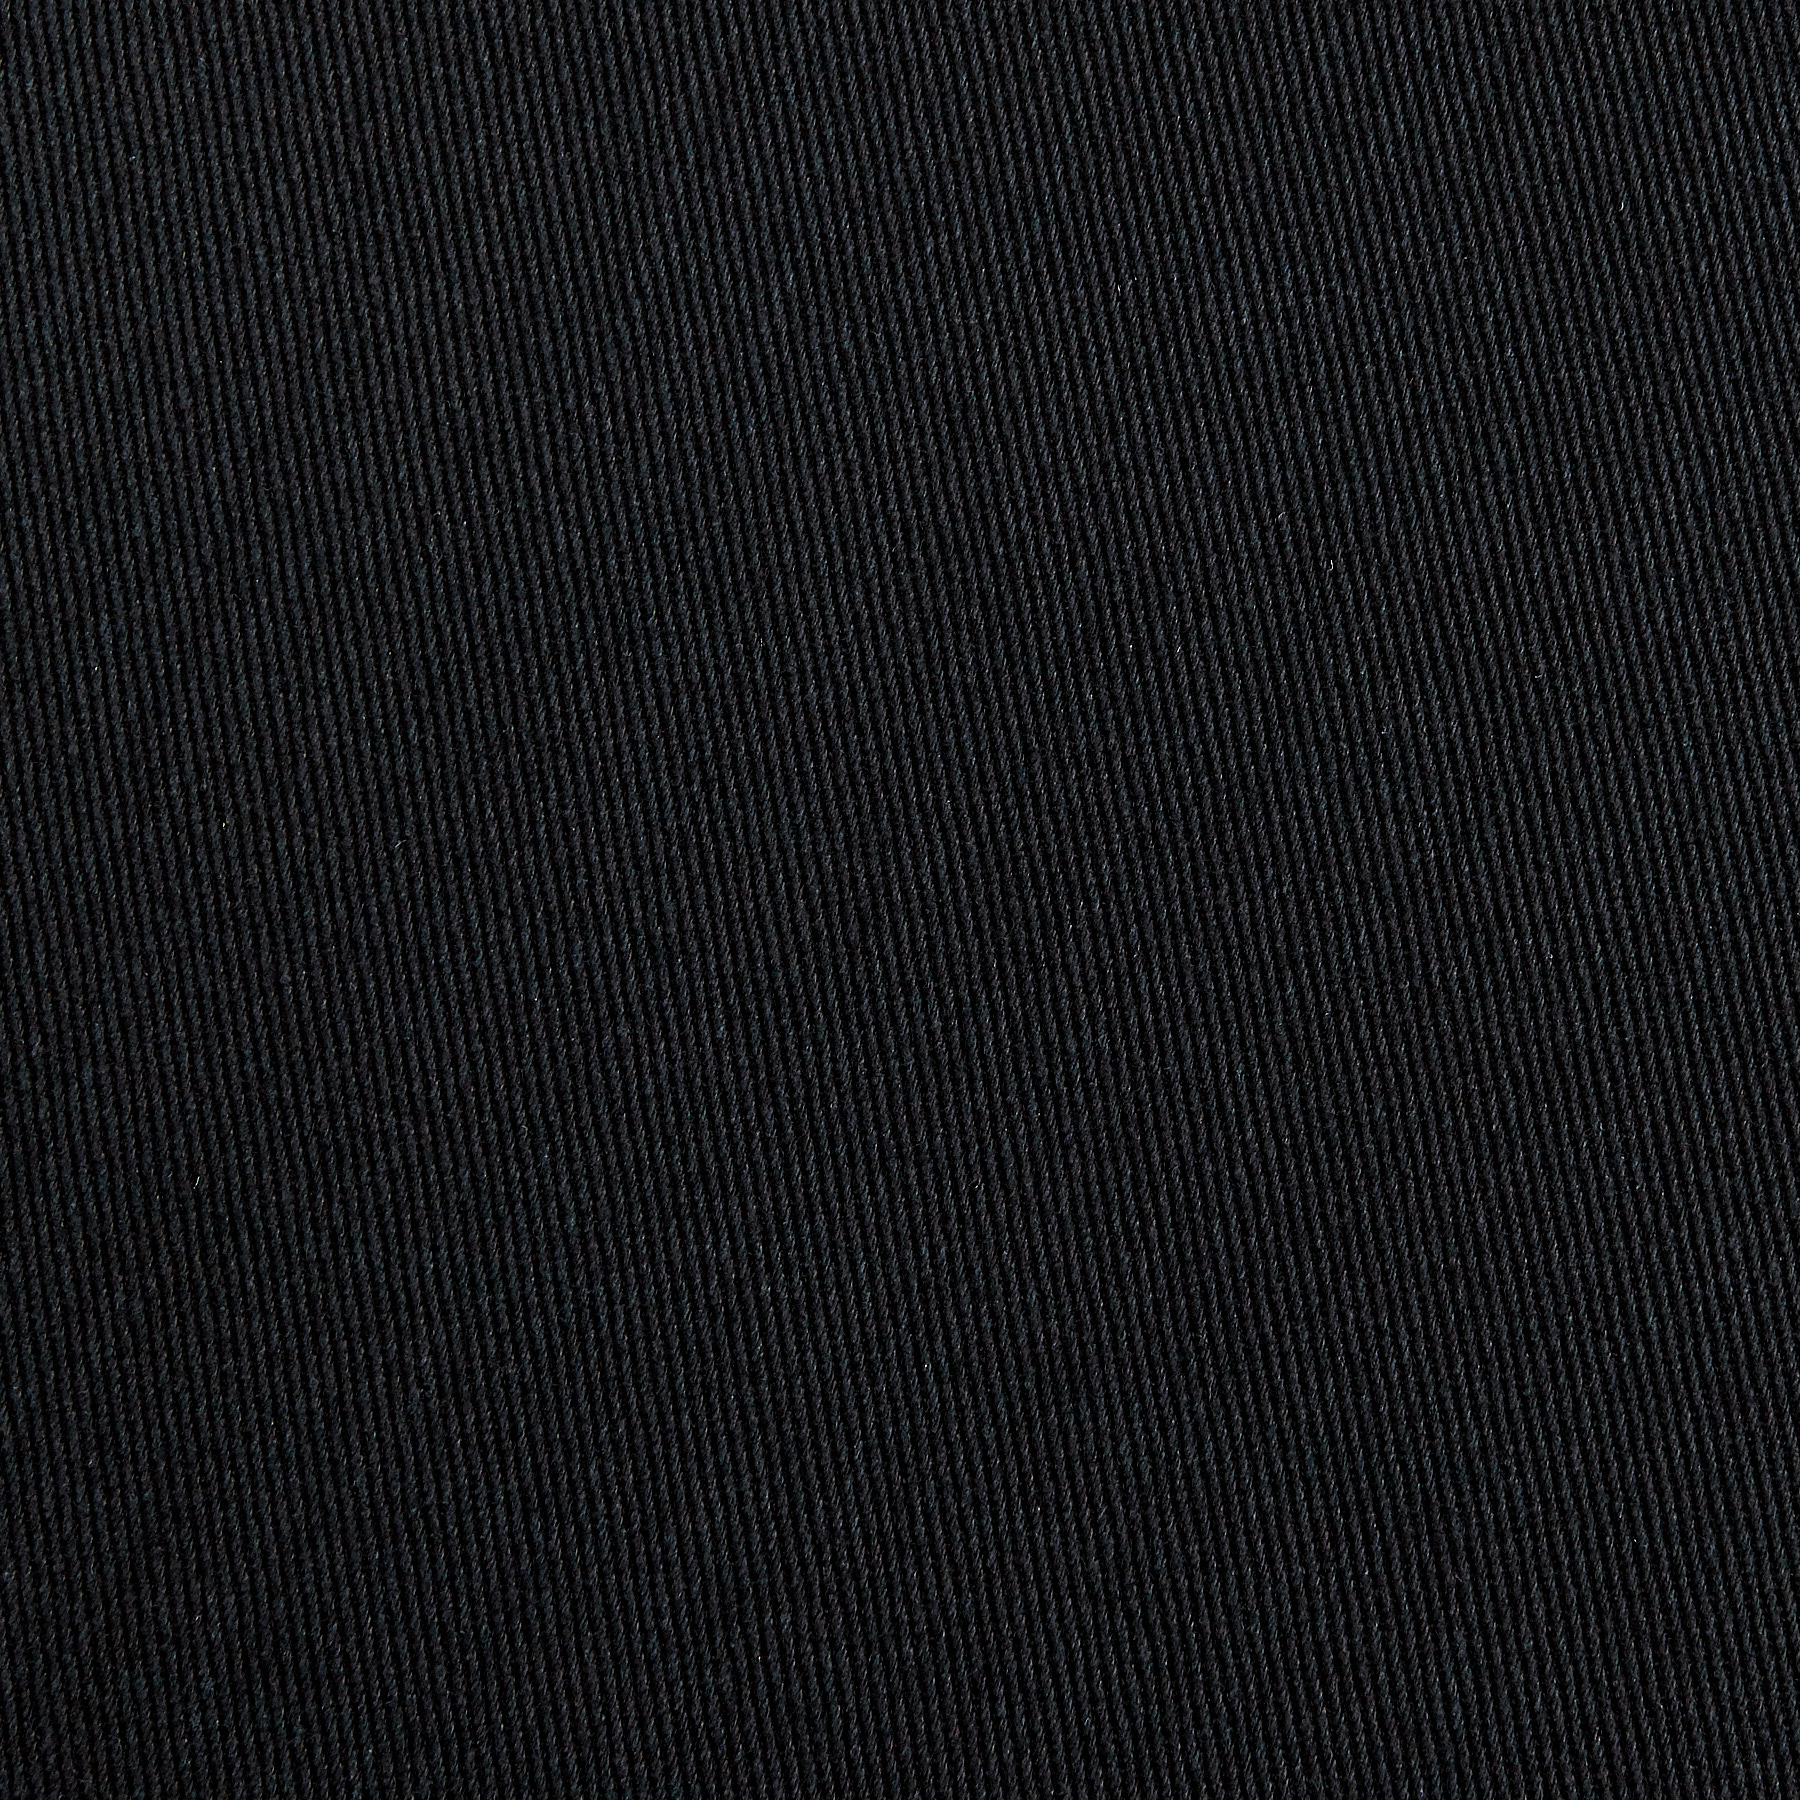 Sanded/Brushed Twill Black Fabric by Carr in USA